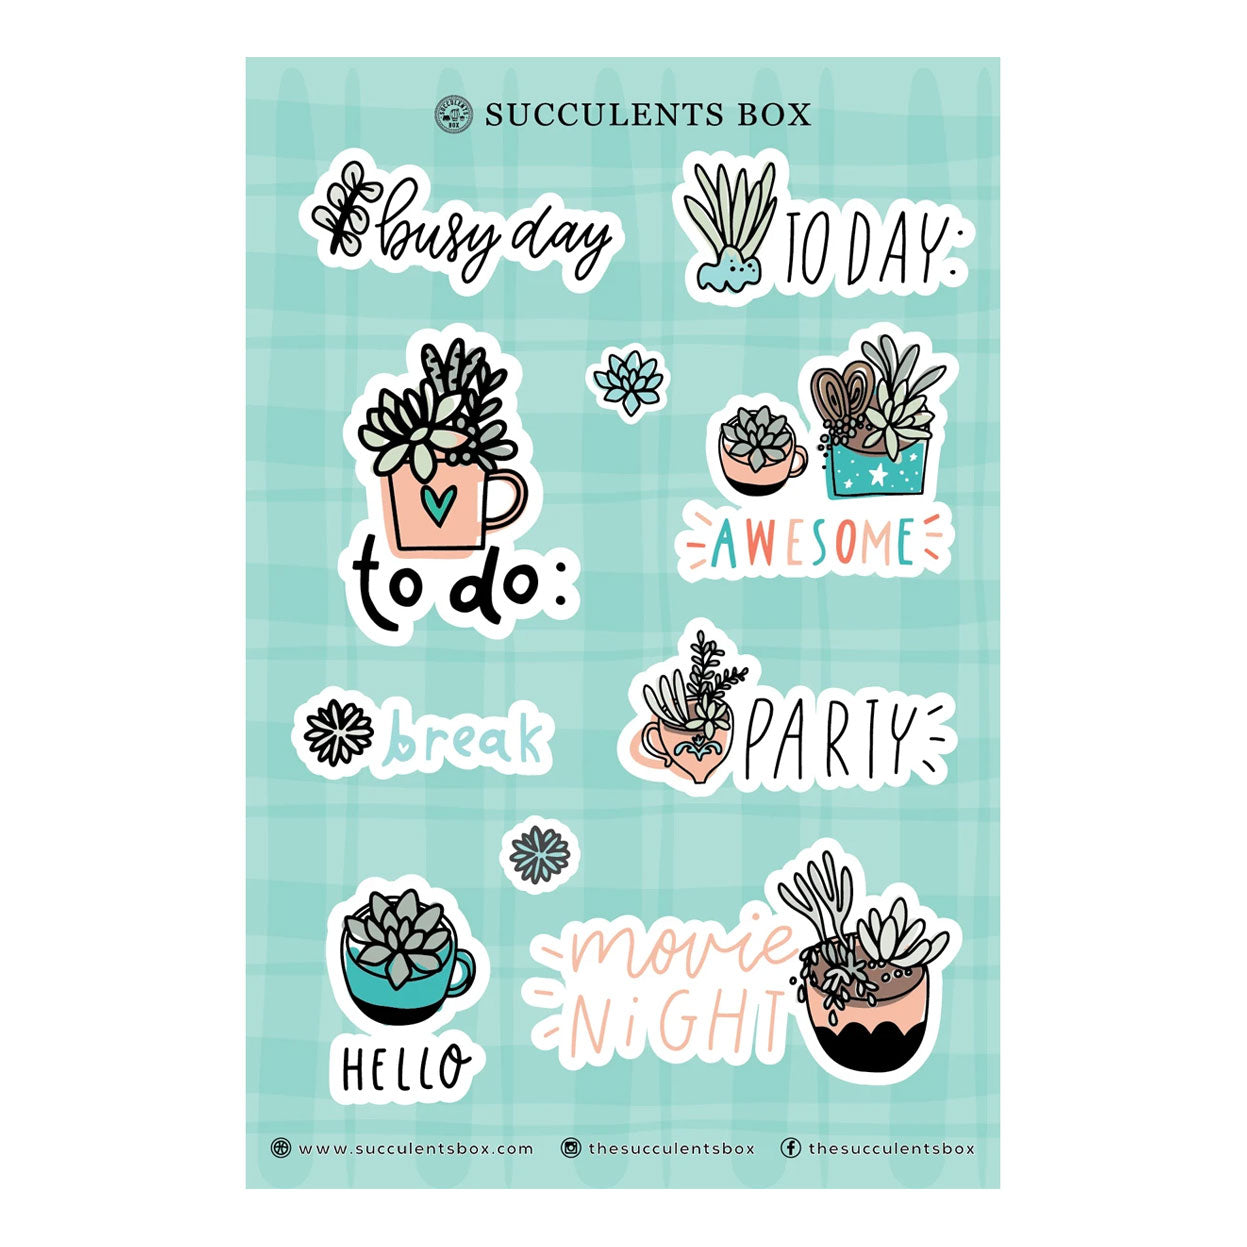 Succulent Planner Sticker for sale, succulent craft ideas, succulent gift ideas, cute plant stickers, decorative scrapbook sticker for sale